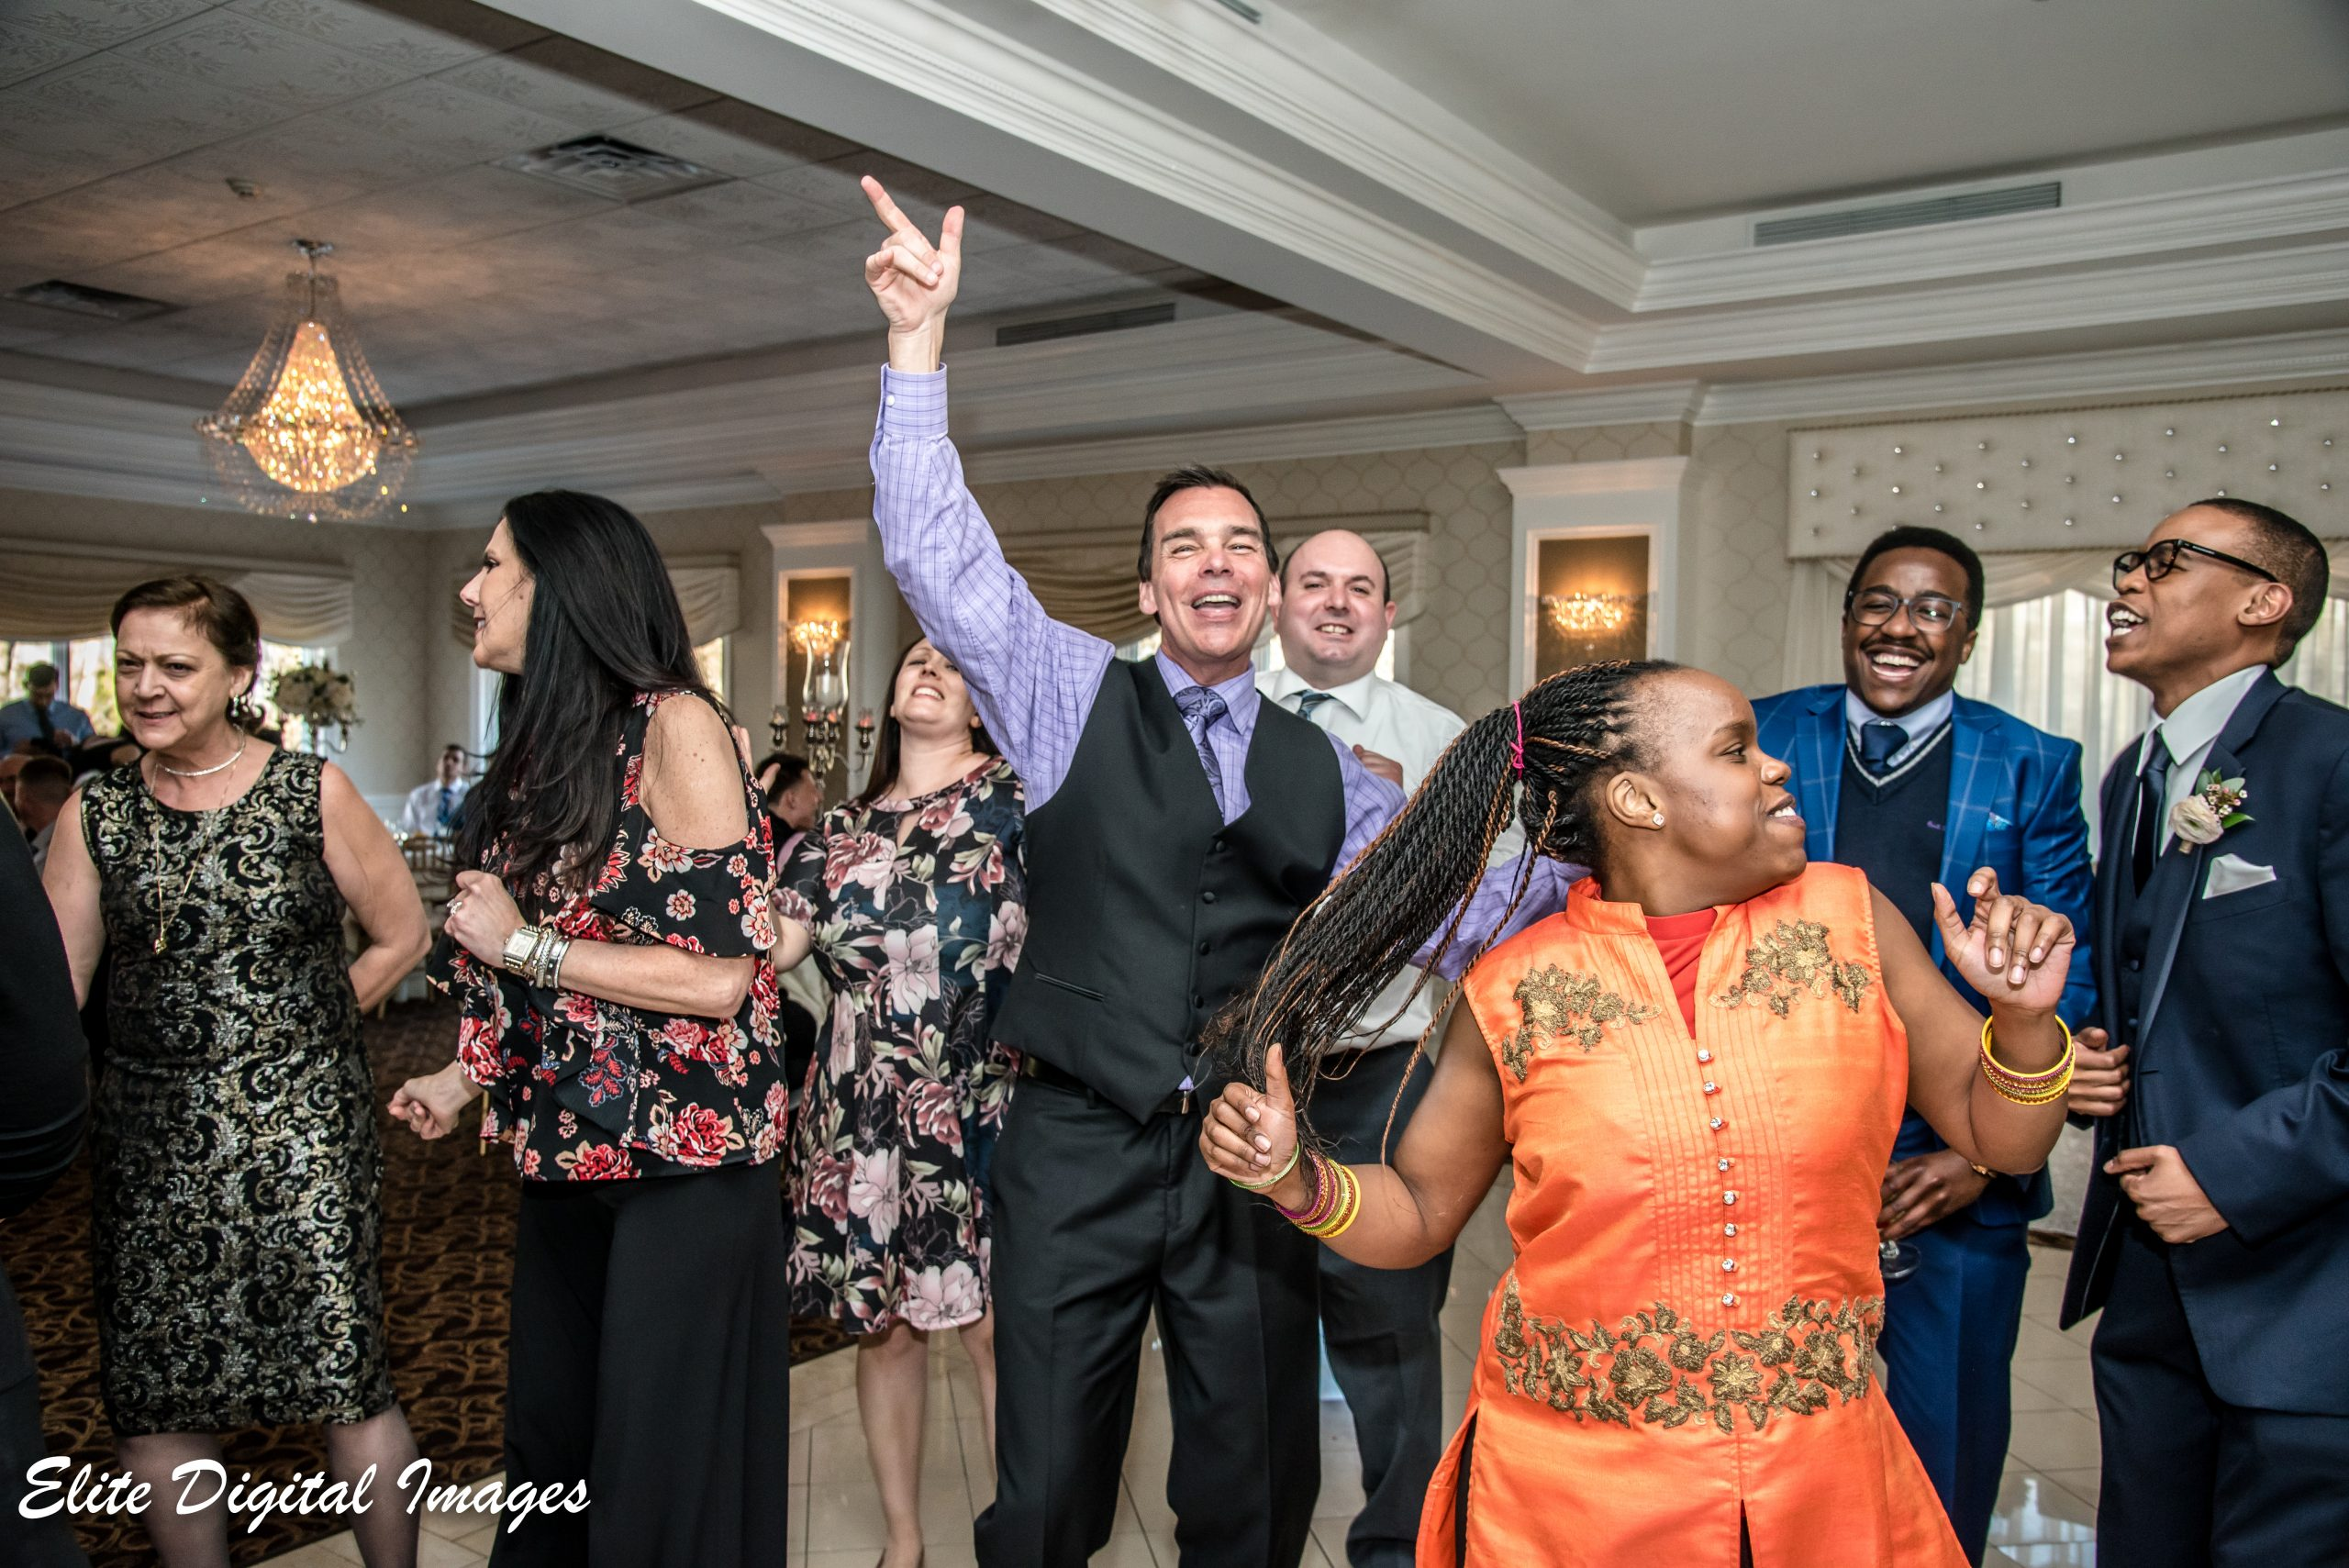 Elite Entertainment_ NJWedding_ EliteDigitalImages_EnglishManor_Danielle and Michael_Mike Walter 2